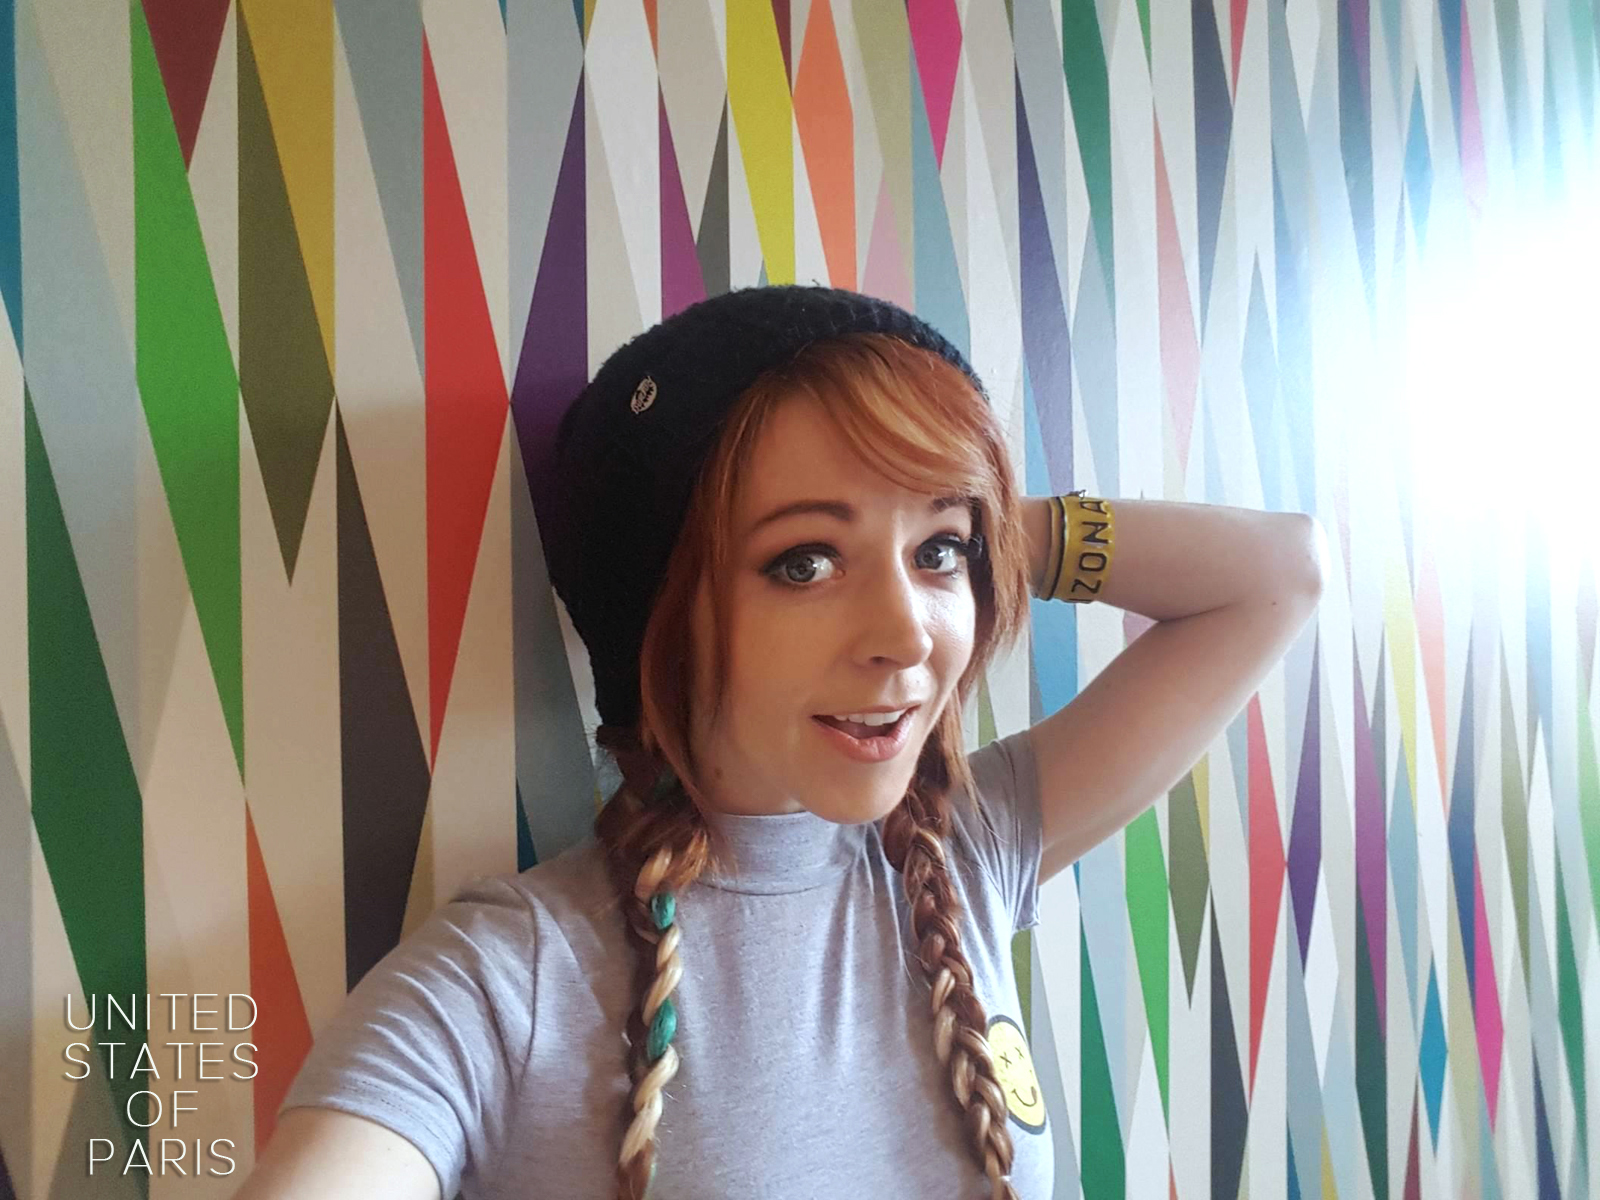 Lindsey Stirling selfie original exclusive for usofparis blog Brave enough new album © united states of paris